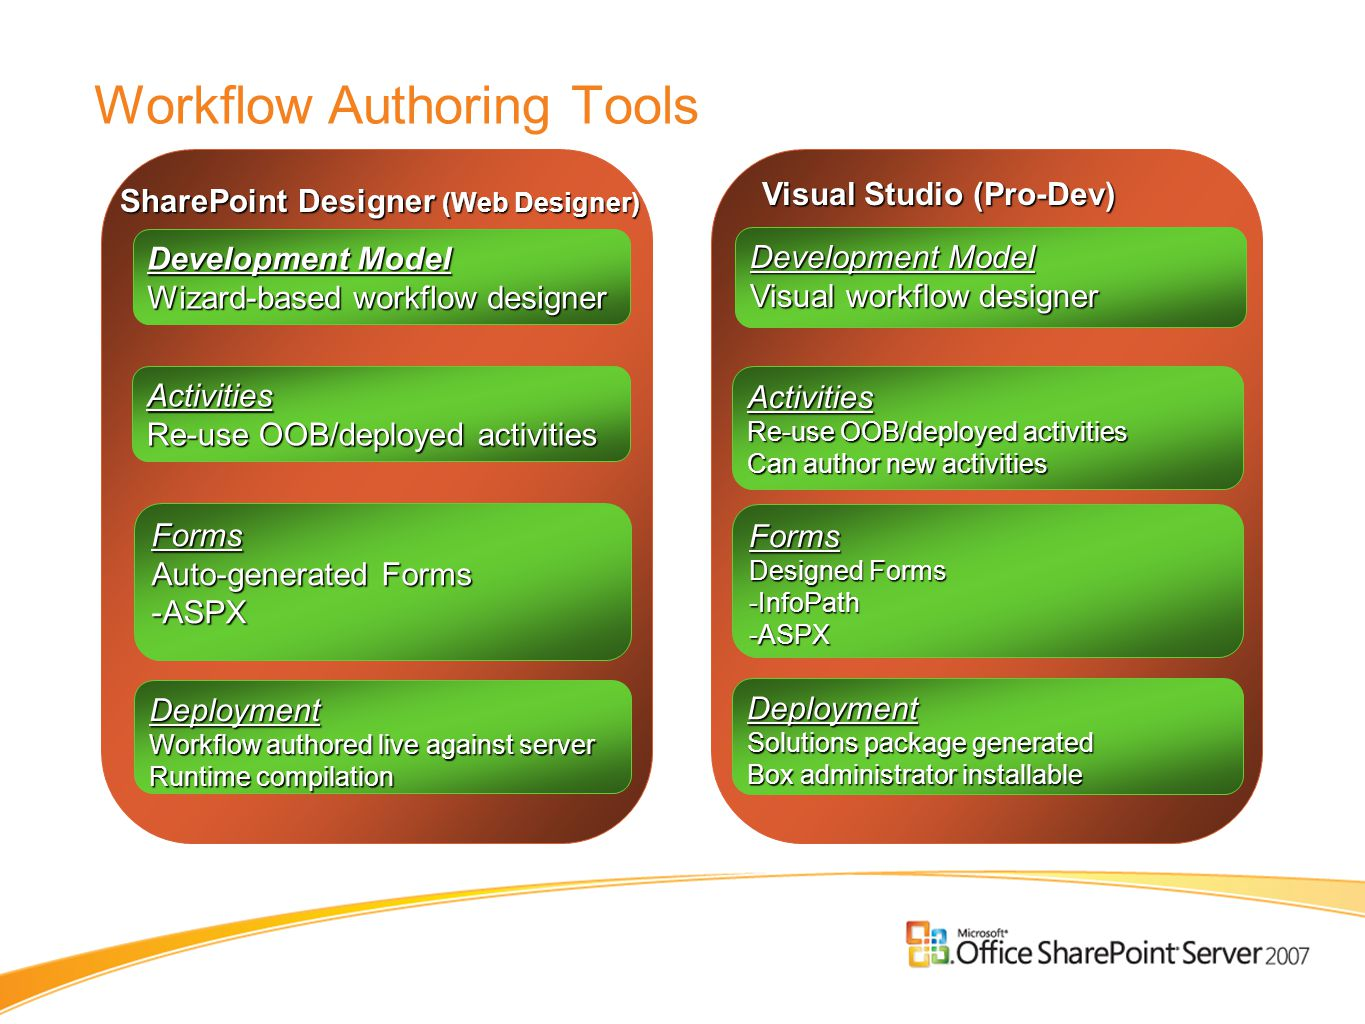 Workflow Authoring Tools SharePoint Designer (Web Designer) Activities Re-use OOB/deployed activities Forms Auto-generated Forms -ASPX Deployment Workflow authored live against server Runtime compilation Development Model Wizard-based workflow designer Visual Studio (Pro-Dev) Activities Re-use OOB/deployed activities Can author new activities Forms Designed Forms -InfoPath-ASPX Deployment Solutions package generated Box administrator installable Development Model Visual workflow designer